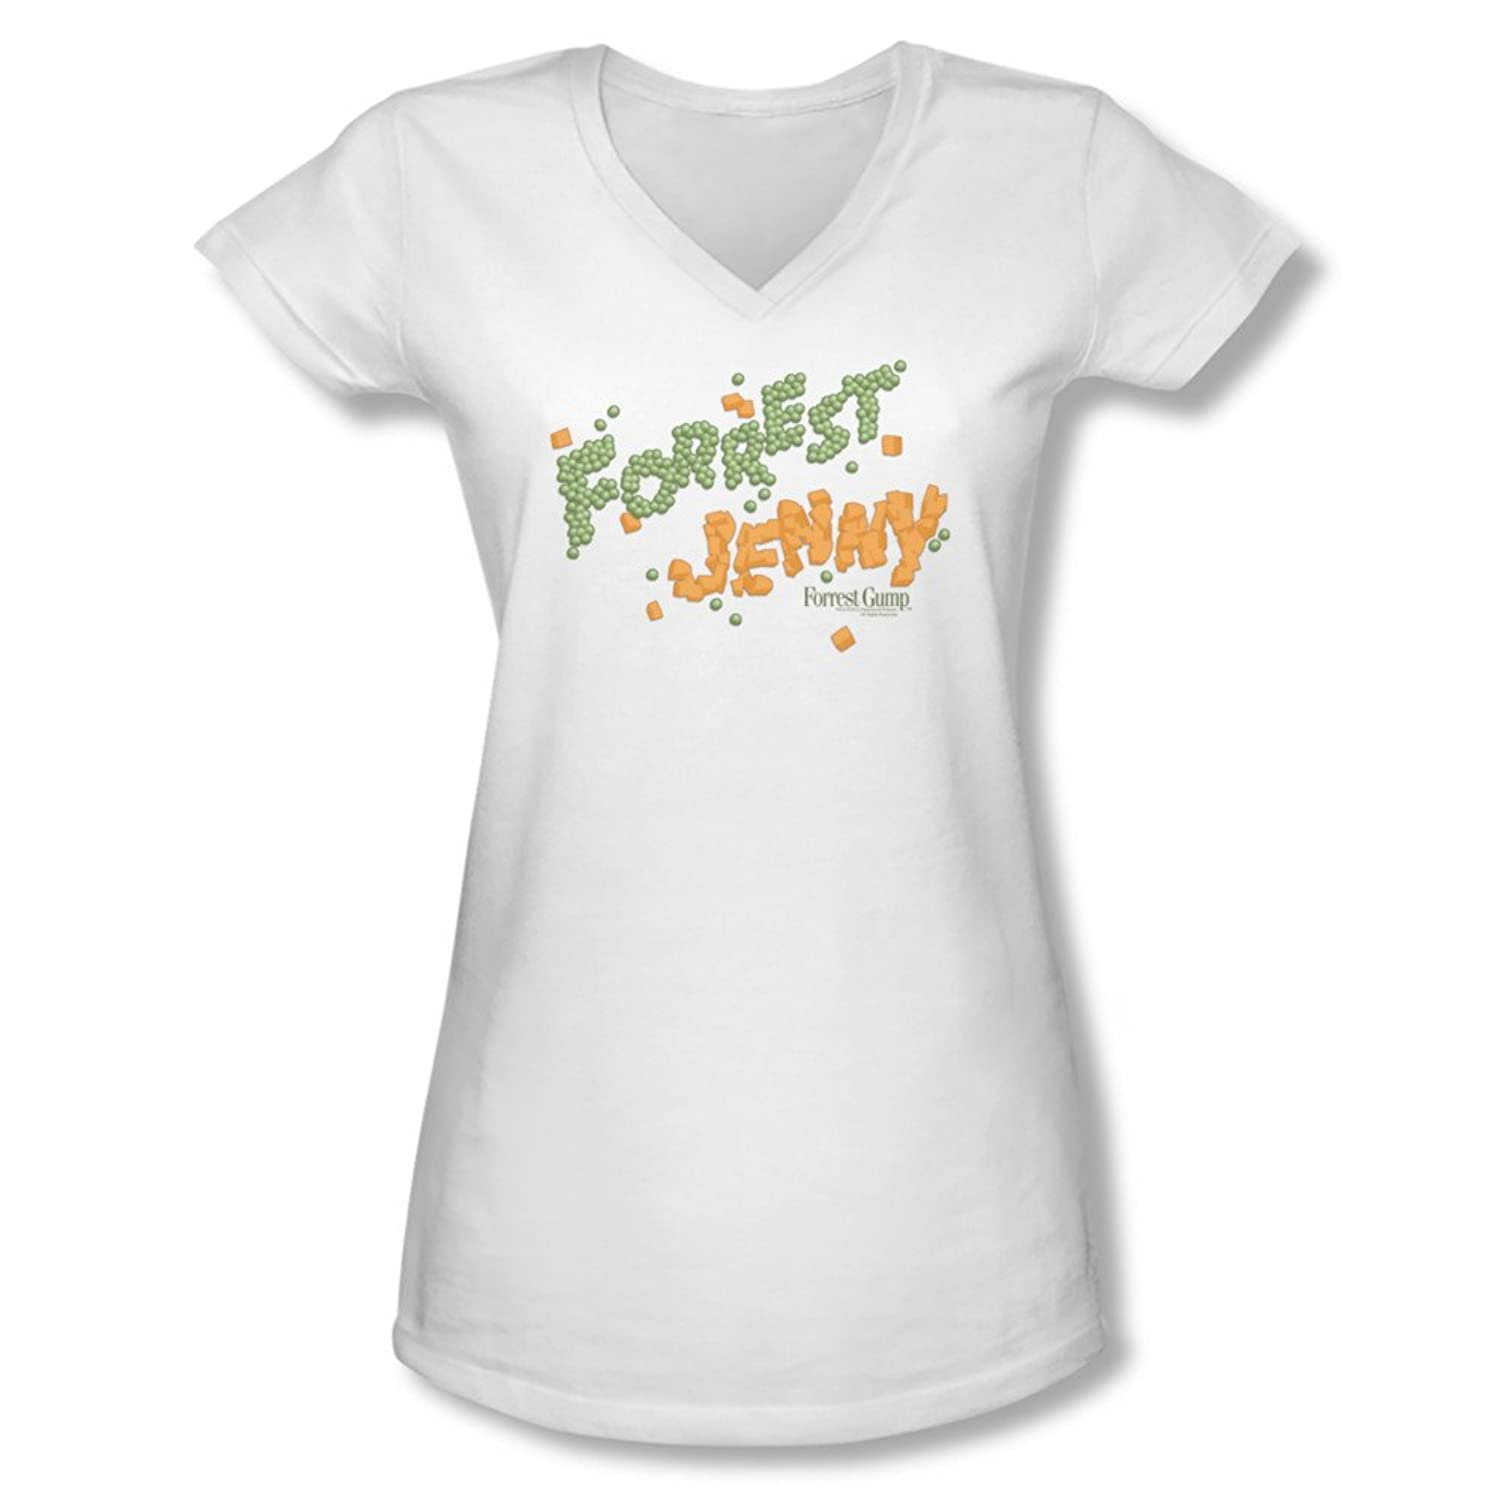 Forrest Gump Romance Drama Movie Peas And Carrots Juniors V-Neck T-Shirt Tee forrest gump ost